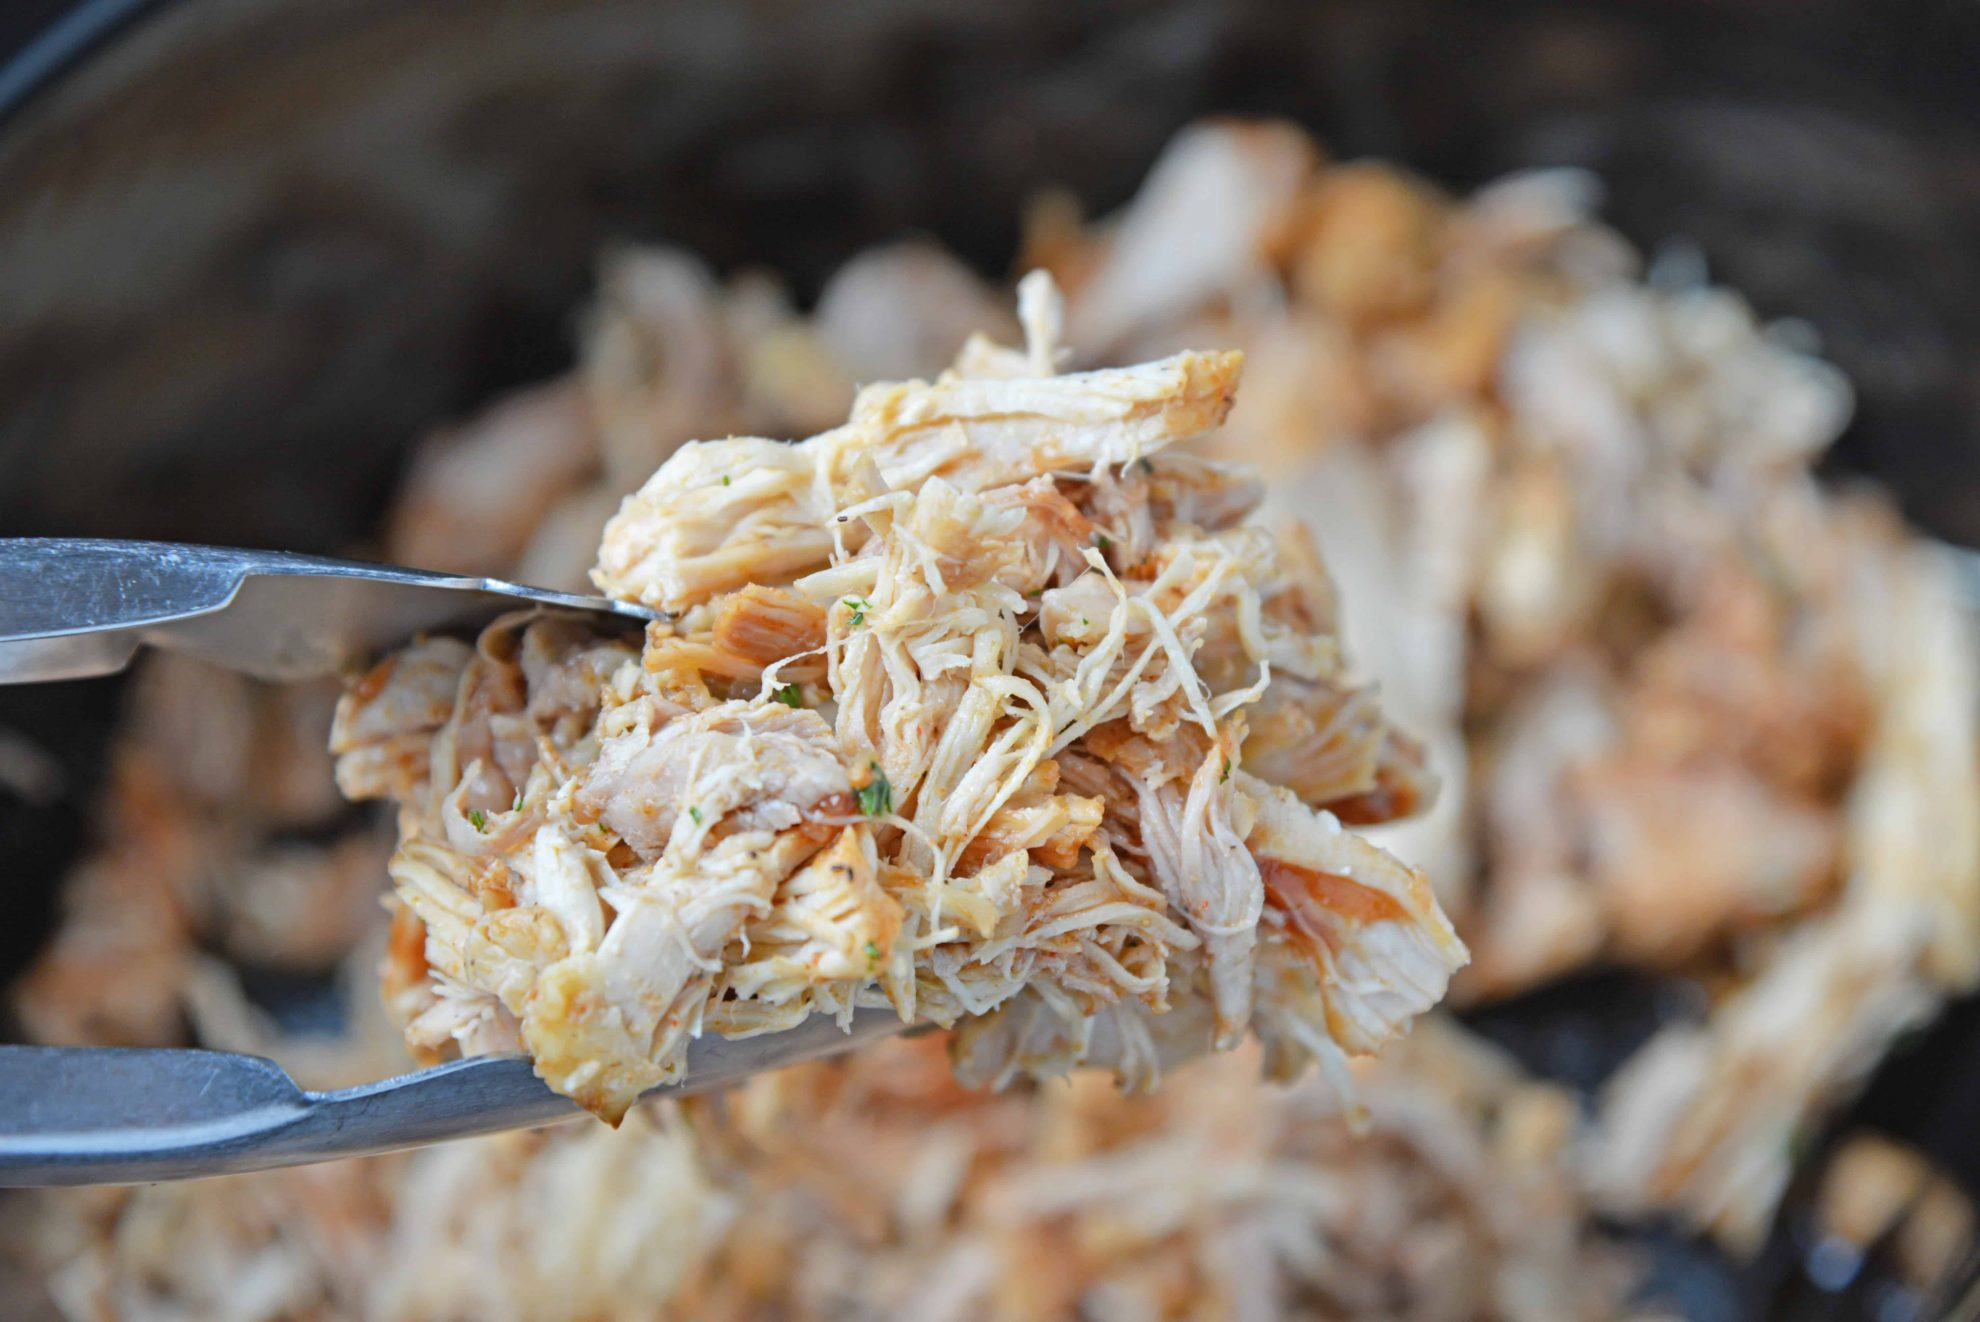 Pulled chicken in tongs